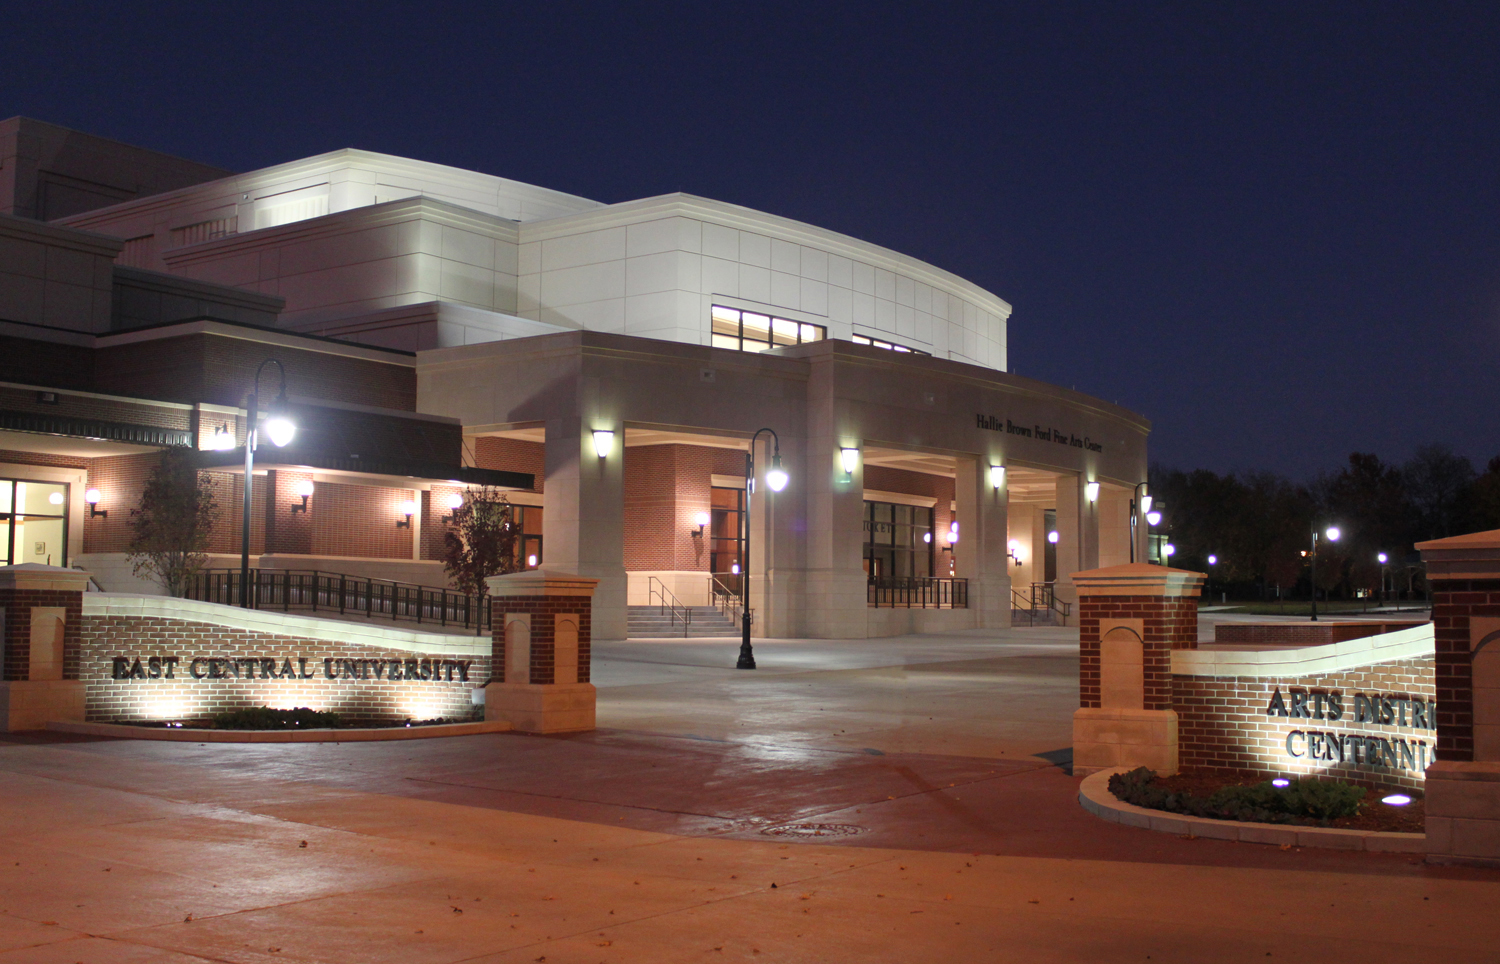 Hallie Brown Ford Fine Arts Center at night.